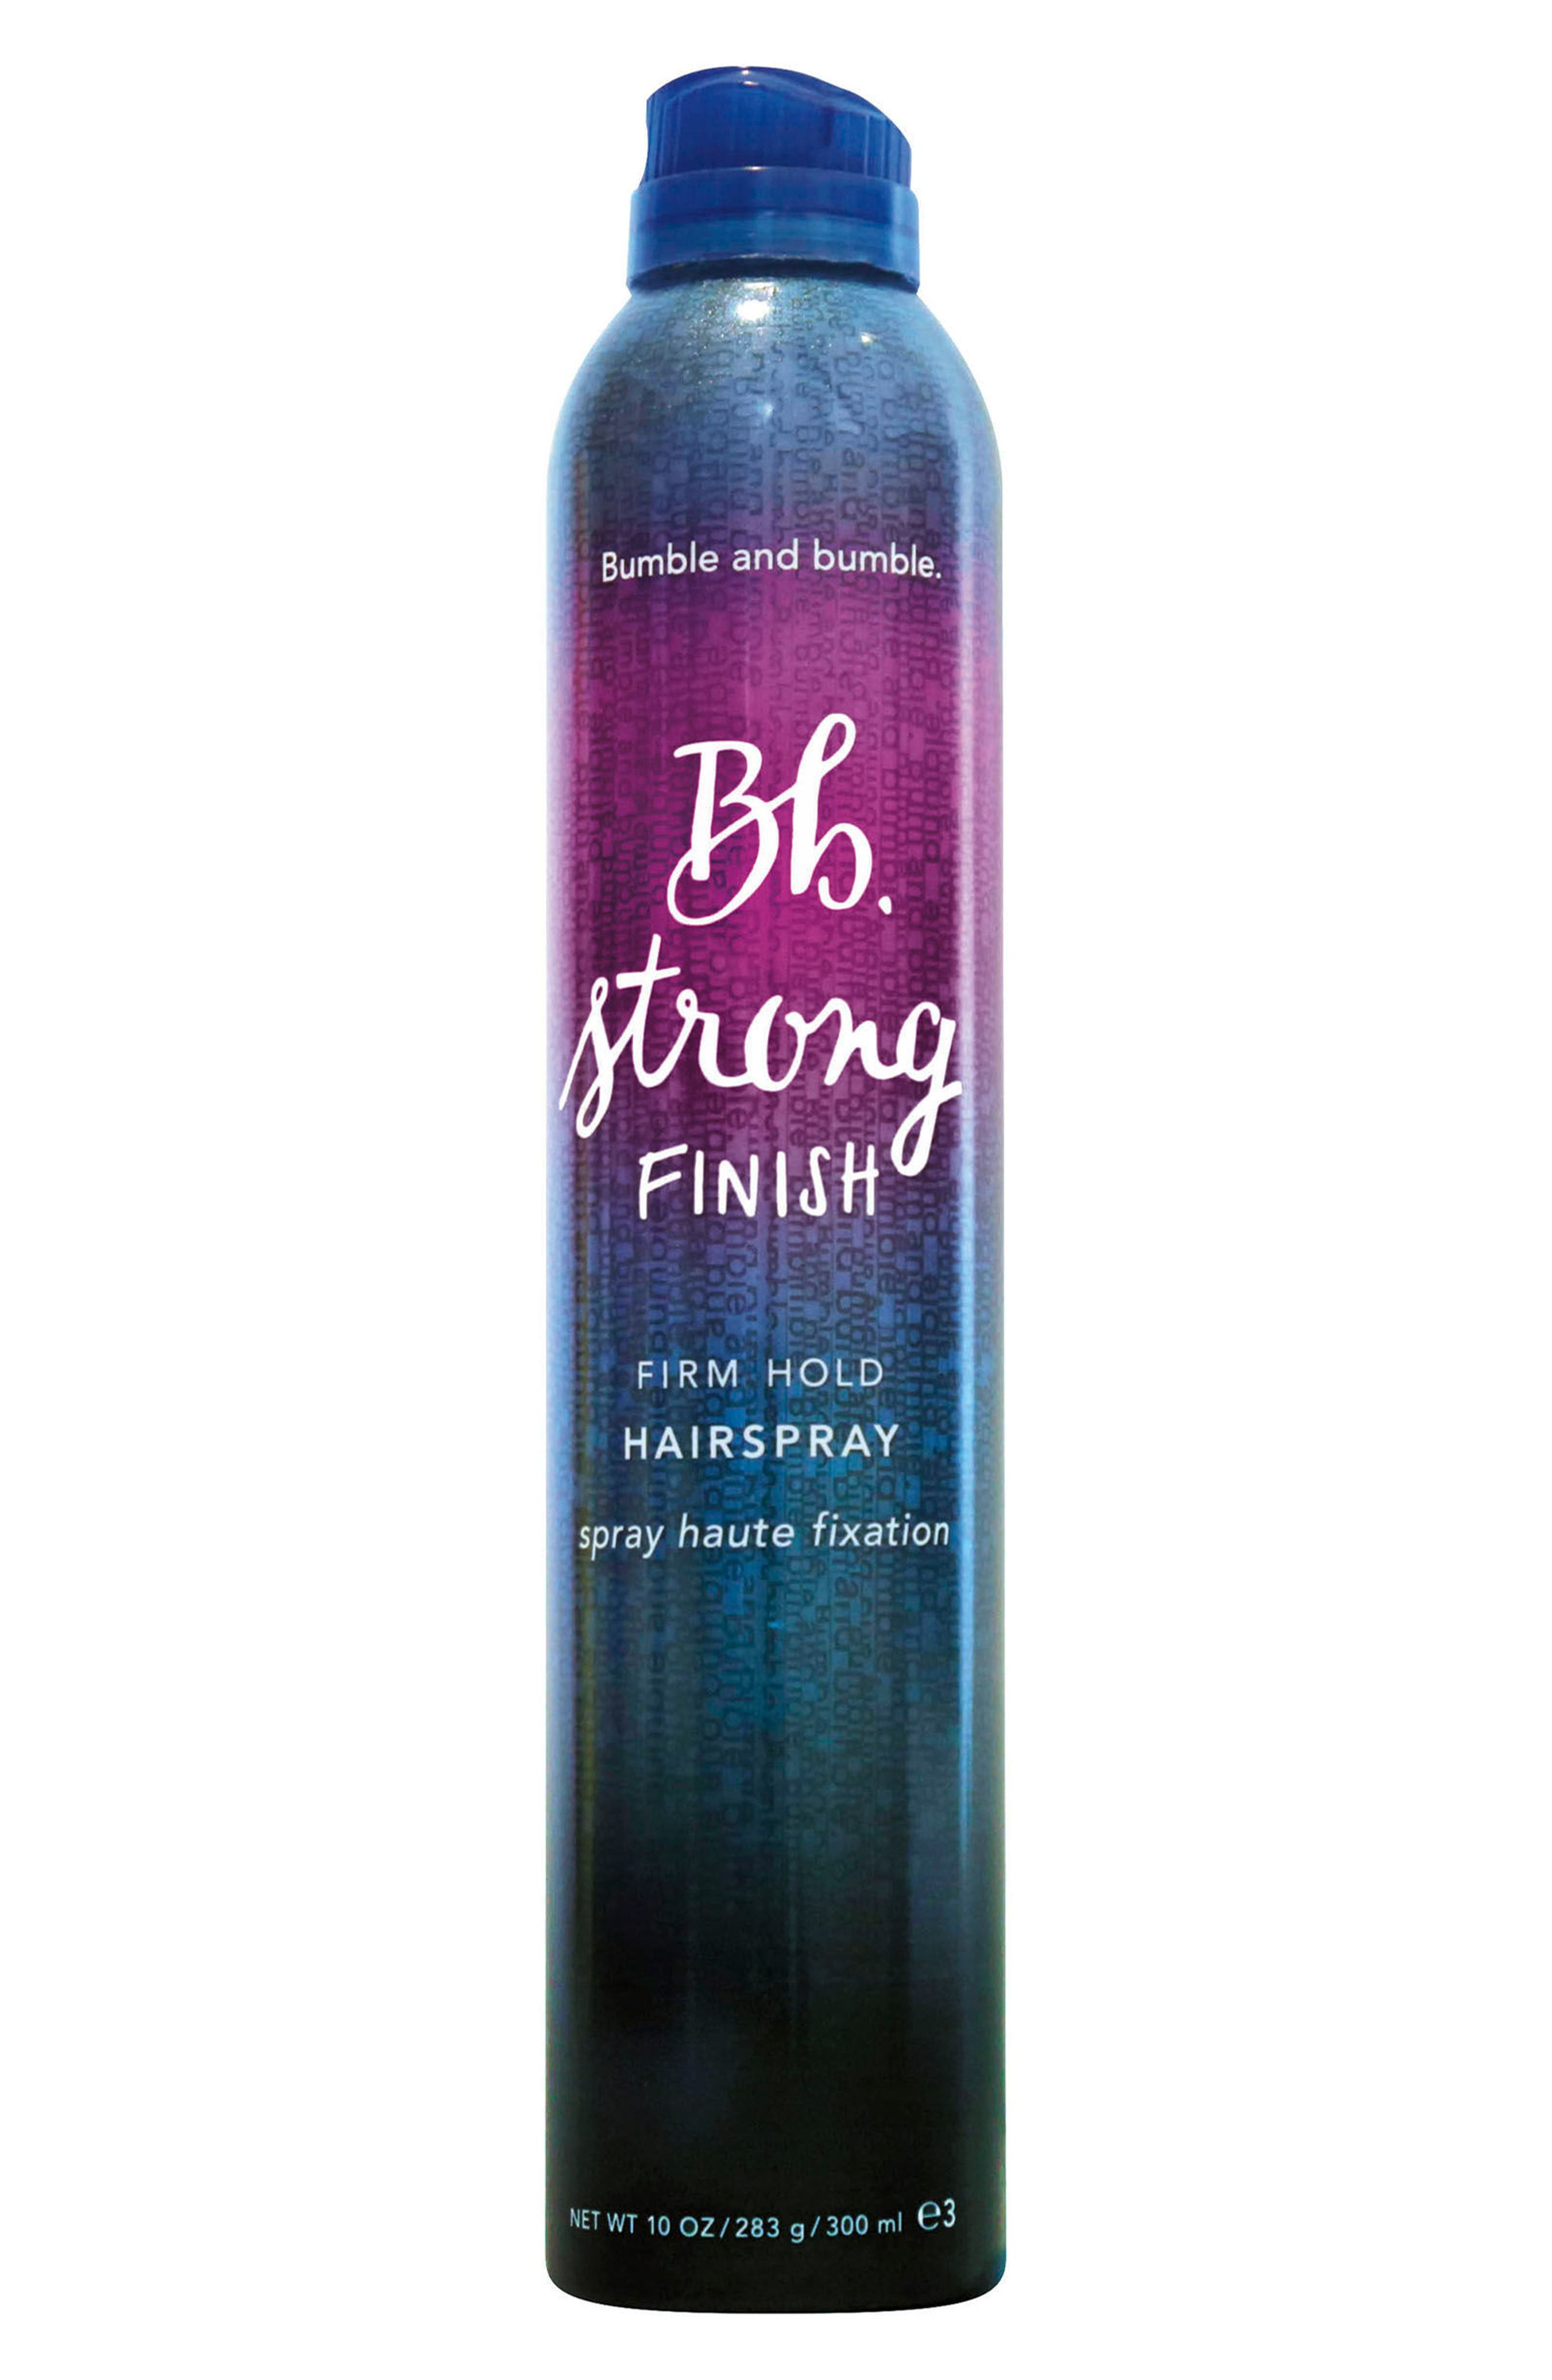 BUMBLE AND BUMBLE. Bumble and bumble Strong Finish Firm Hold Hairspray, Main, color, NO COLOR